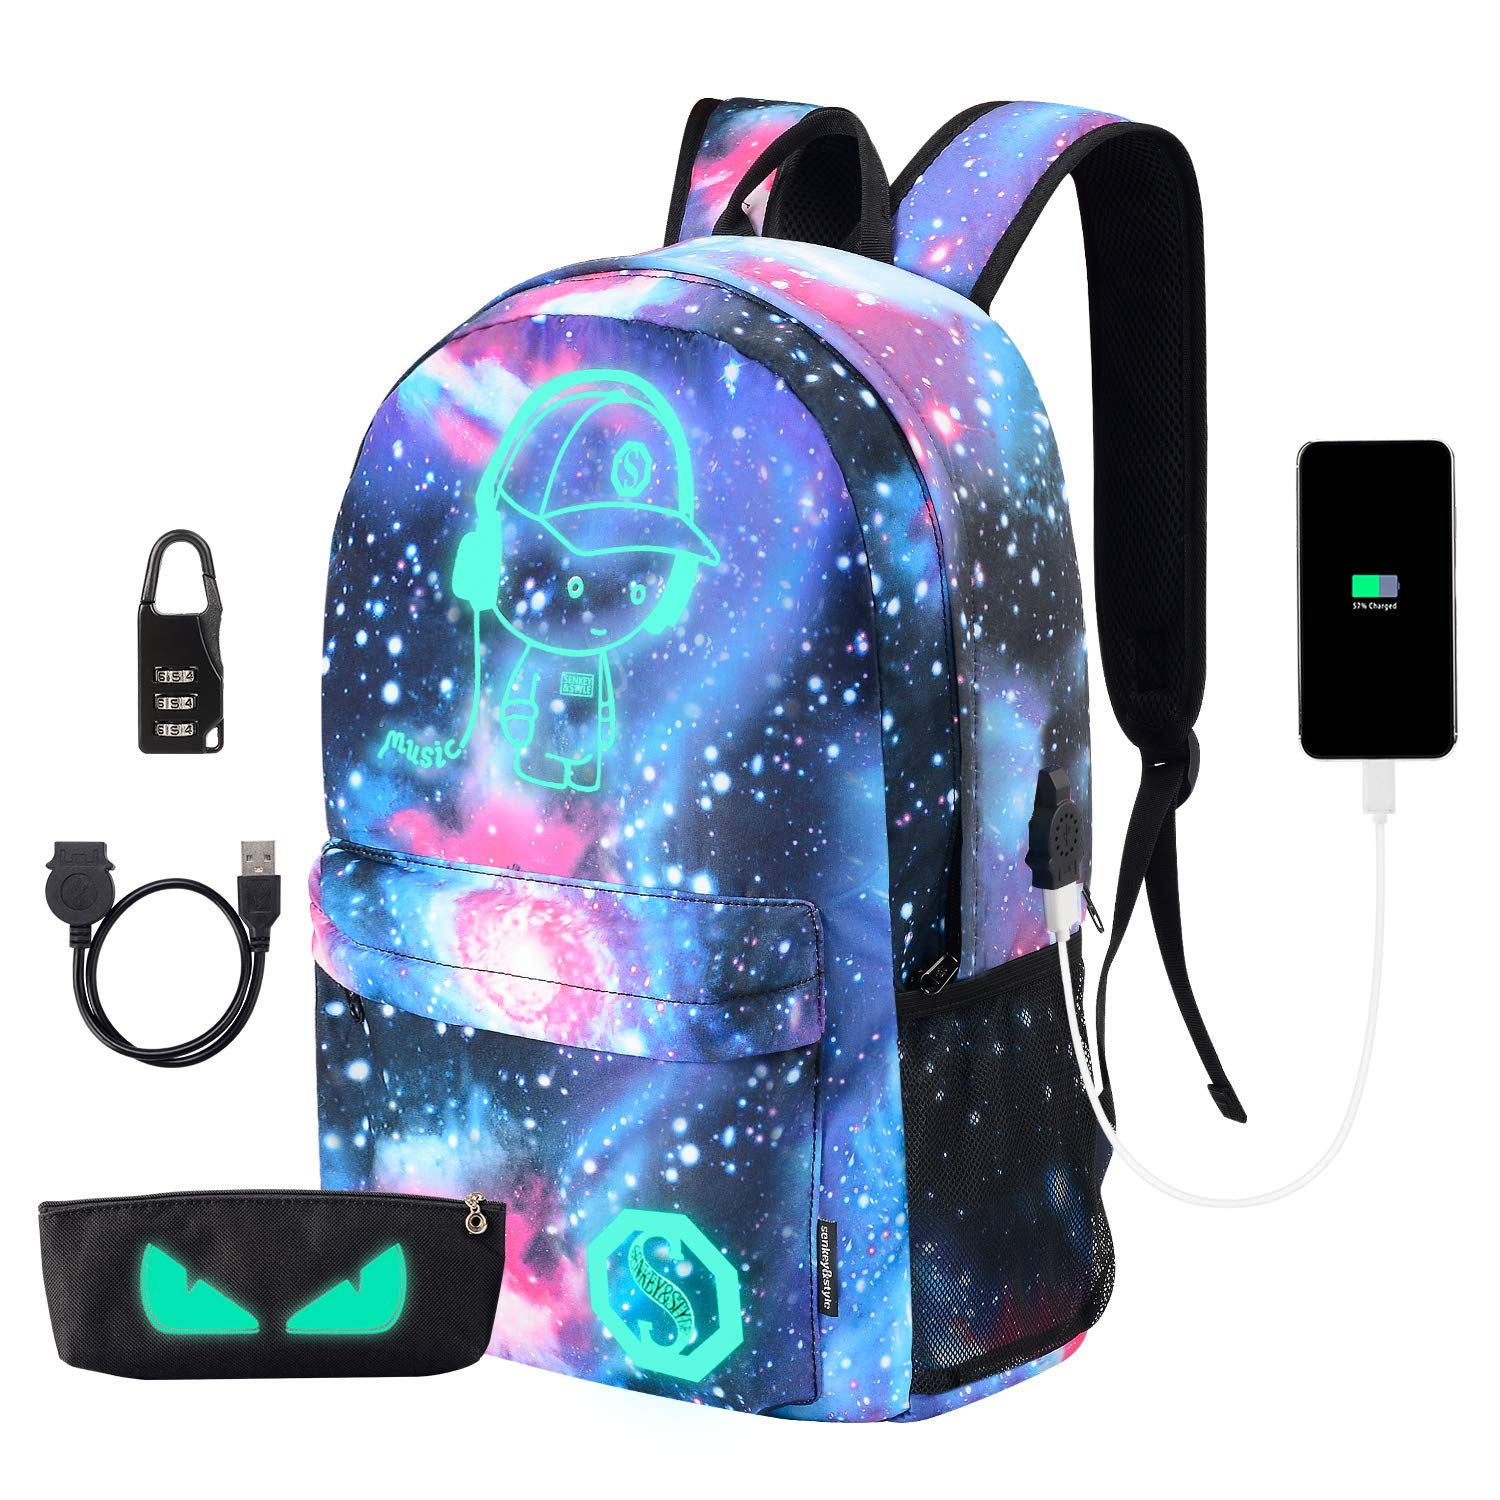 Anime Luminous Backpack Lightweight Laptop Backpack Fashion School Bags Daypack with USB Charging Por for Teens Girls Boys